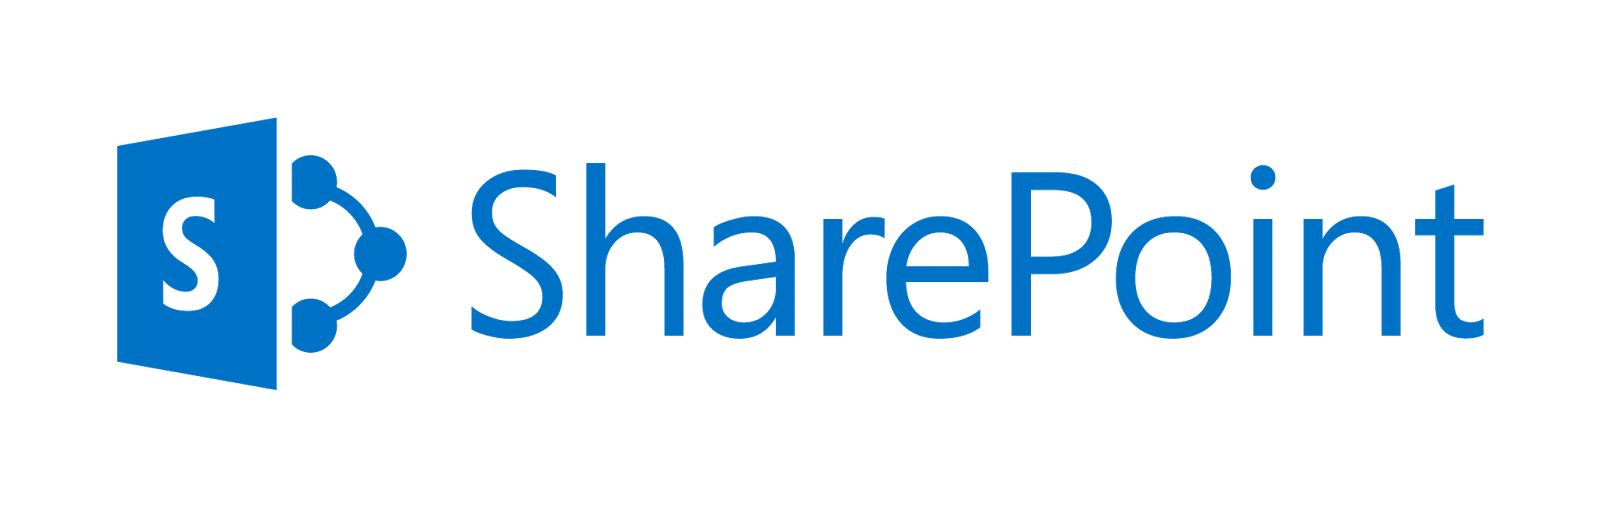 Sharepoint server 2013 march update is out and it s an important one